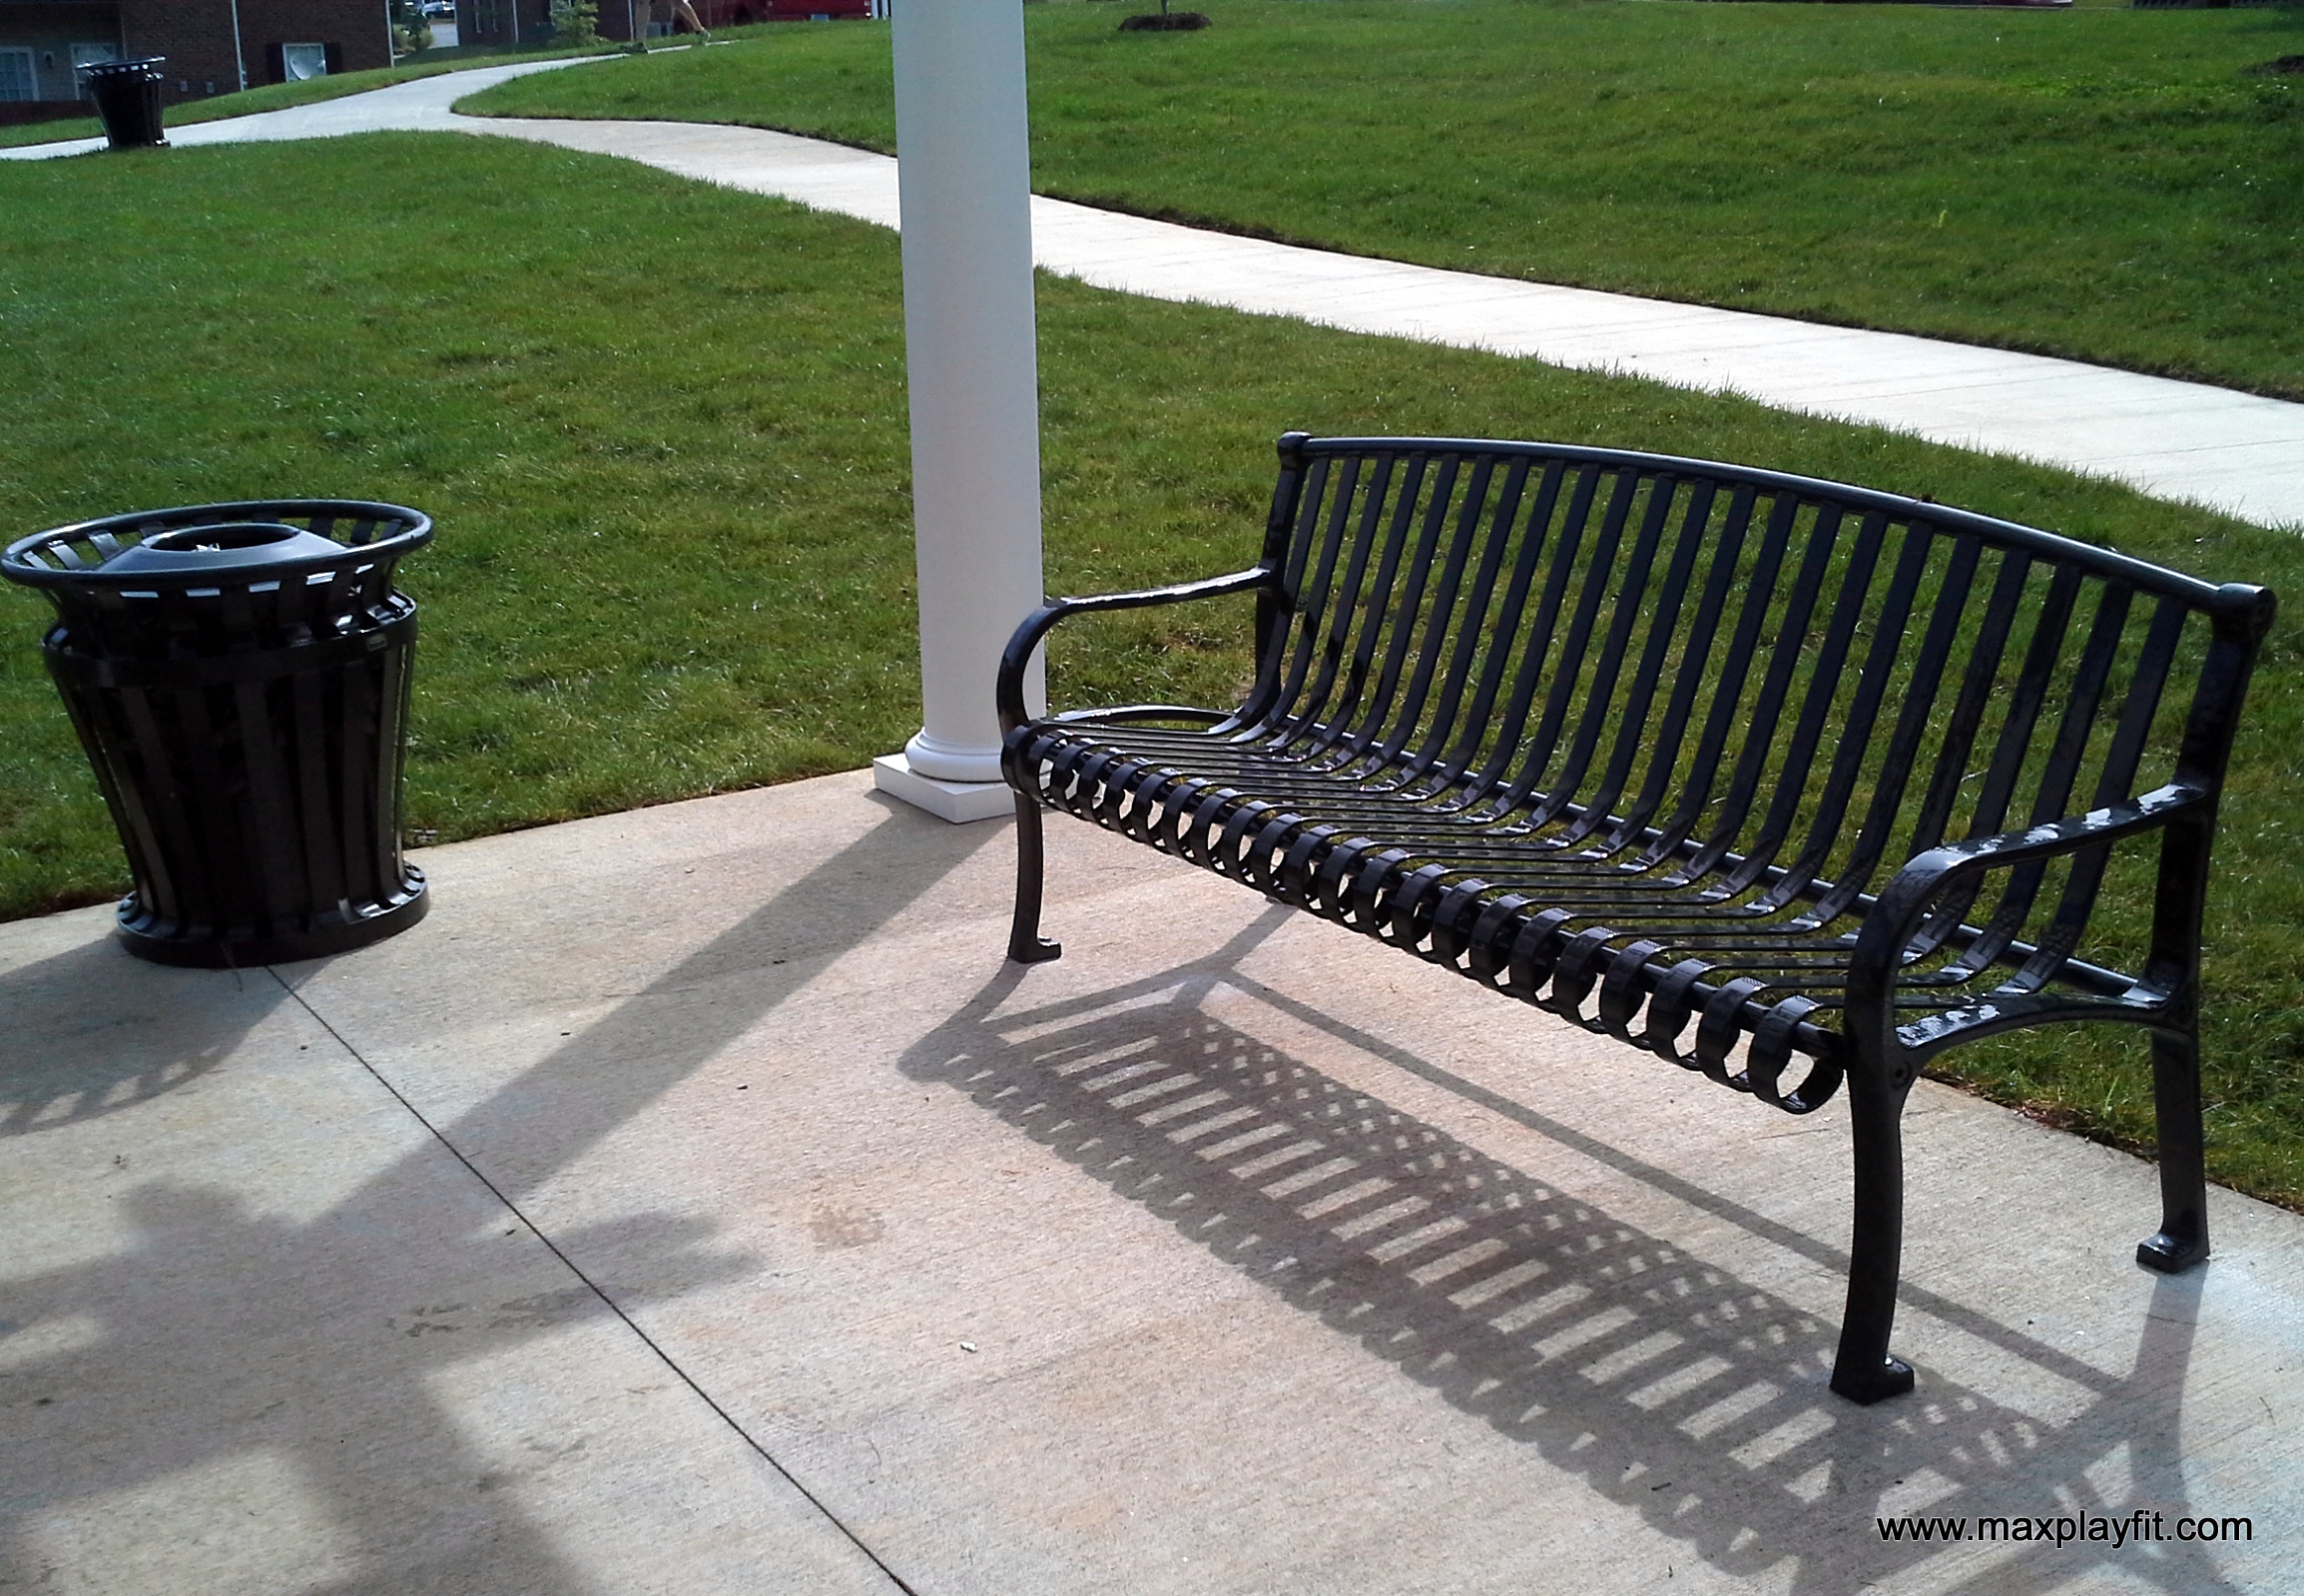 Commercial Outdoor Benches Max Play Fit Llcmax Play Fit